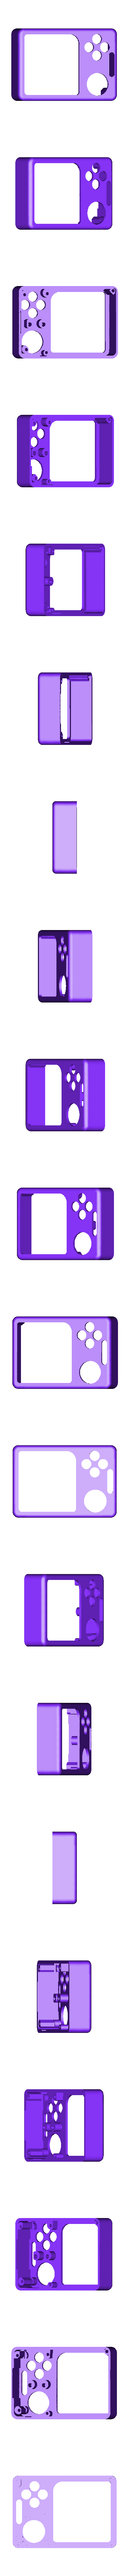 Gameboy_Nano_front.stl Download free STL file Pi Zero - Gameboy NANO • 3D printing model, Lassaalk